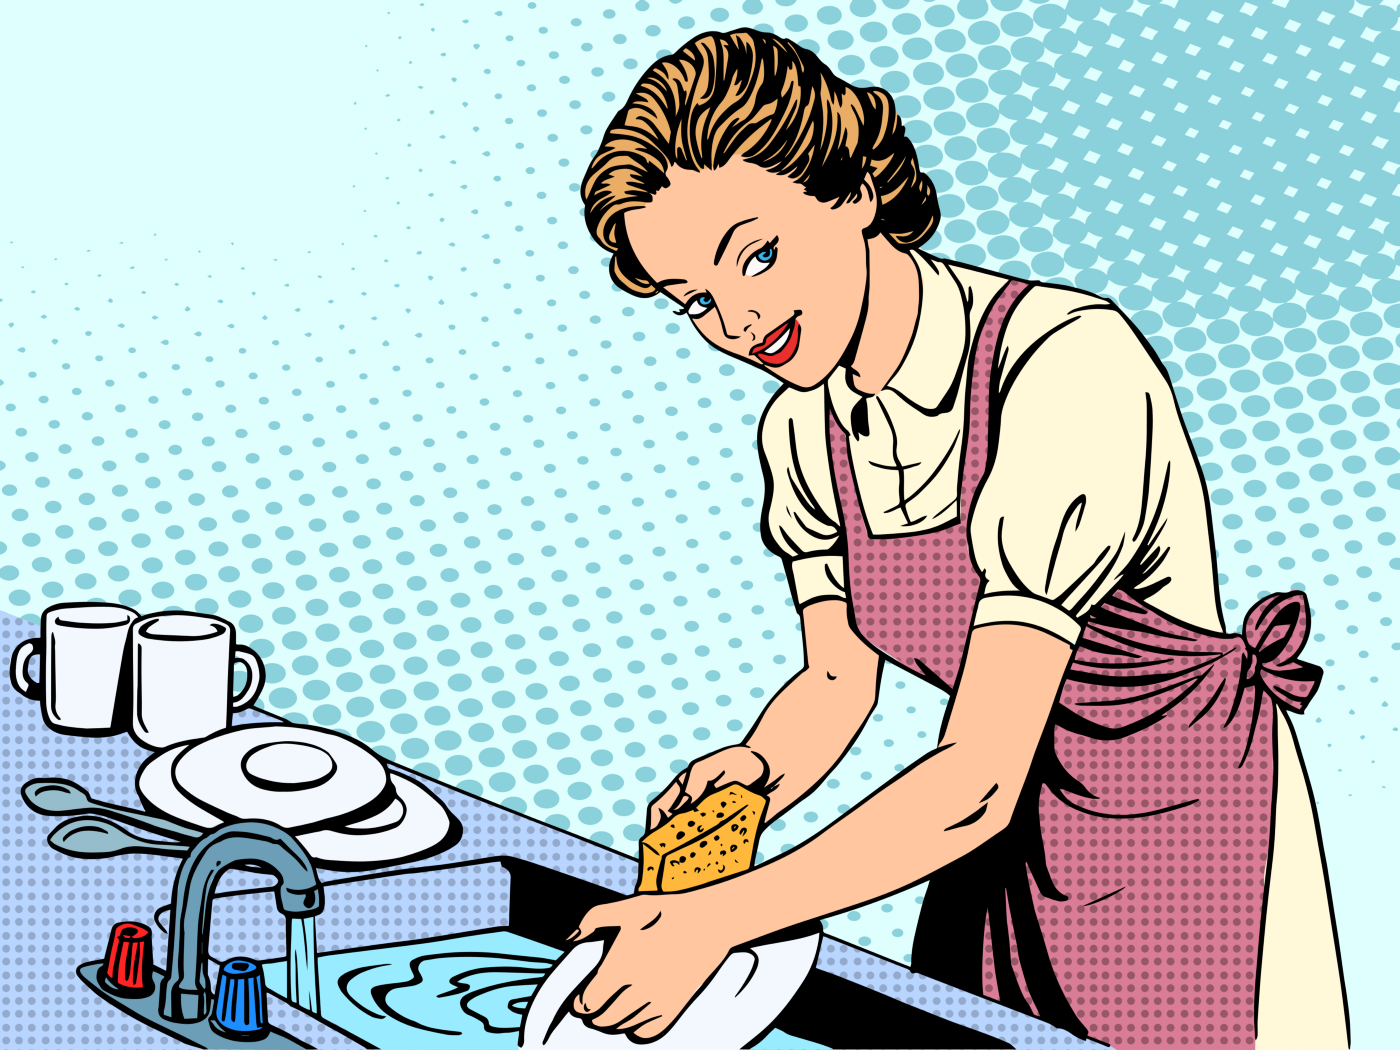 Illustration of the typical 1950's homemaker doing household chores